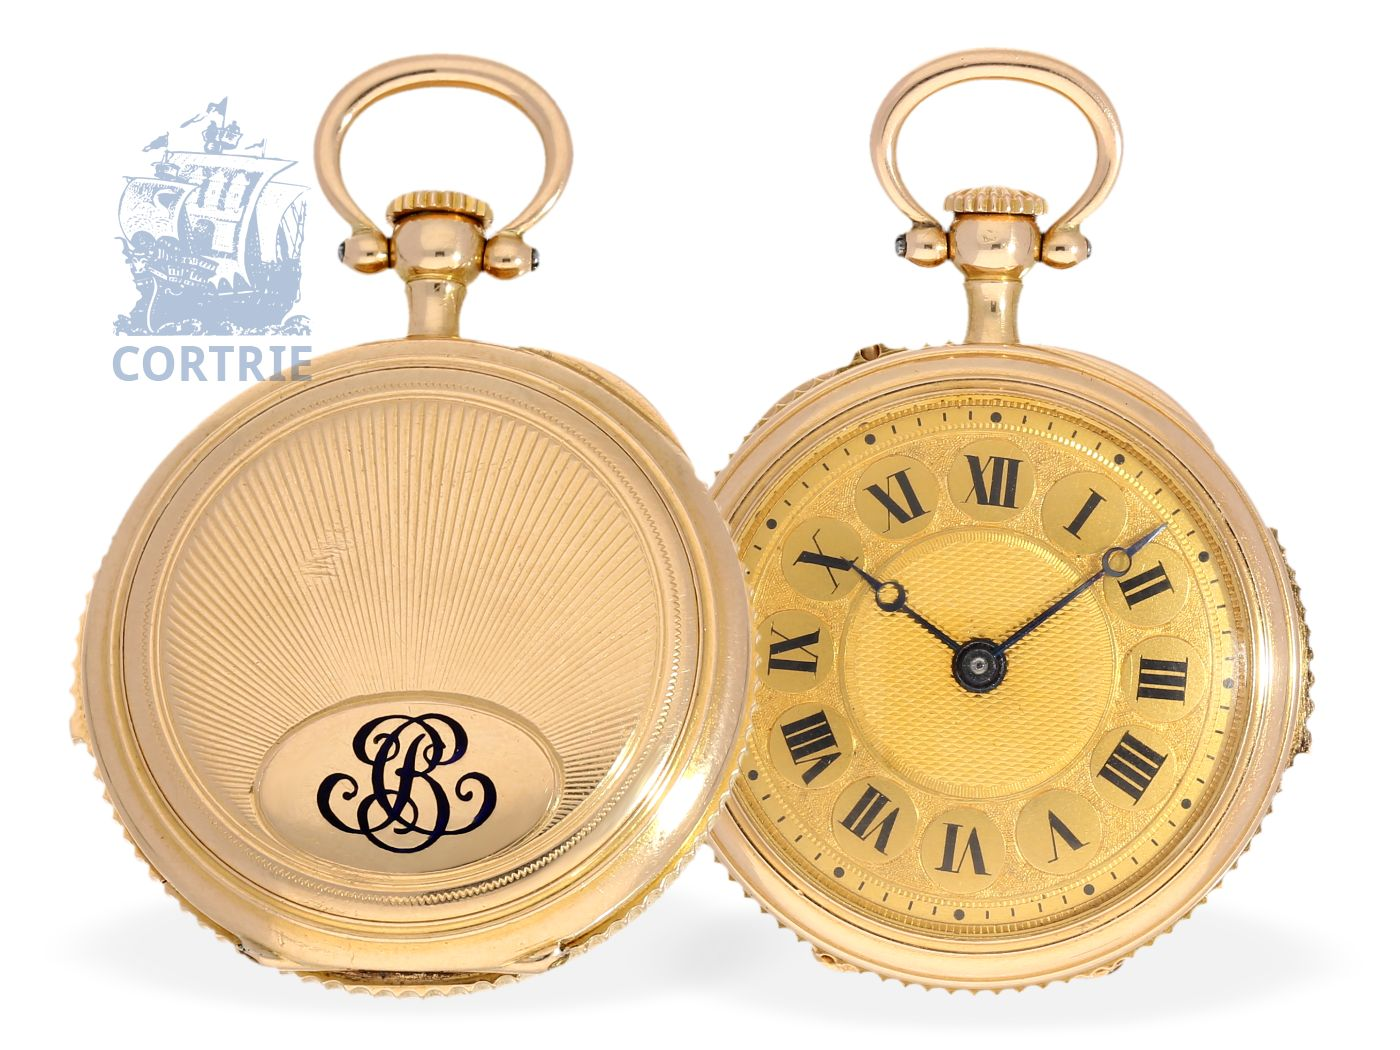 Pocket watch: important and rare miniature pocket watch minute repeater, Leroy & Cie Hger de la Marine Paris/ Louis Elisée Piguet, ca. 1900-